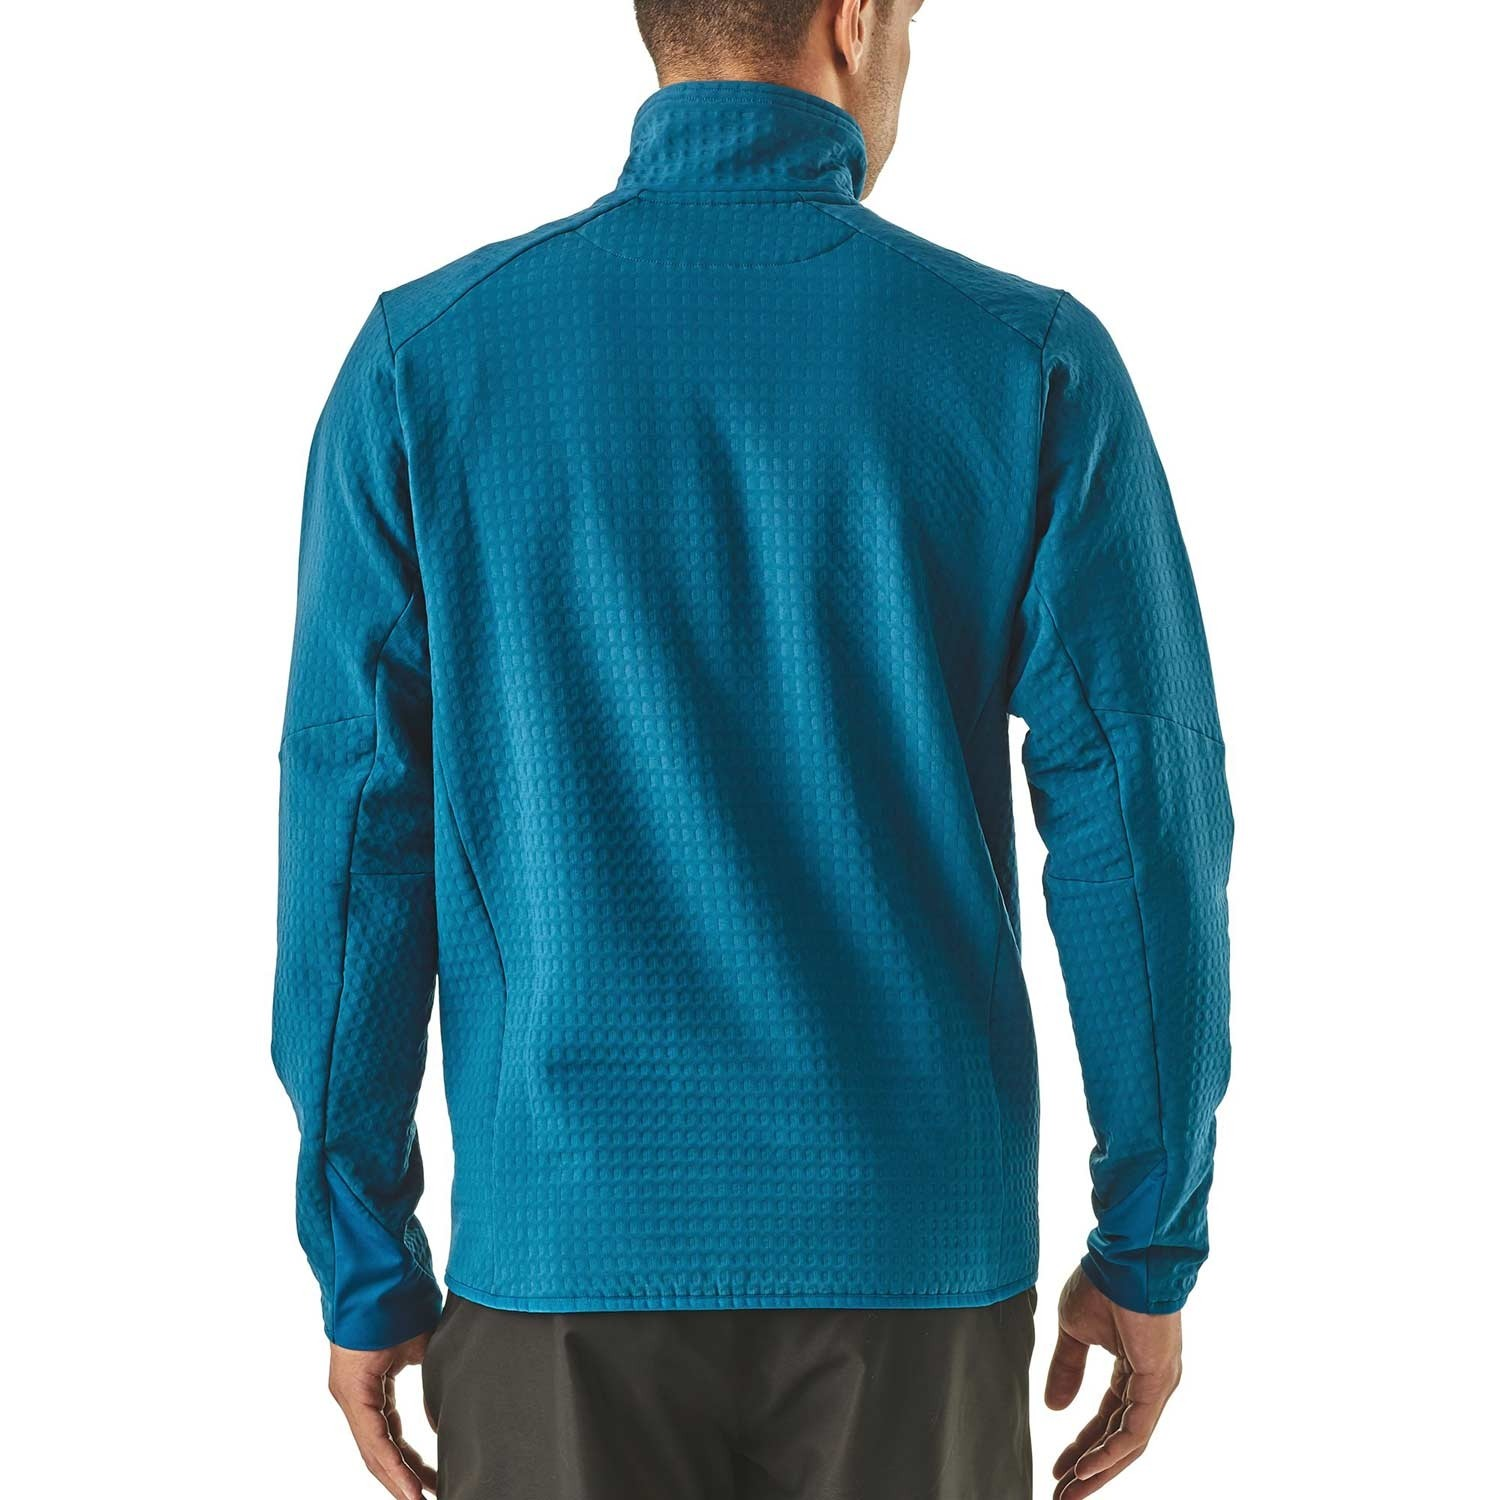 Patagonia R2 TechFace Jacket - please note this is the Balkan Blue colour, NOT the Classic Navy